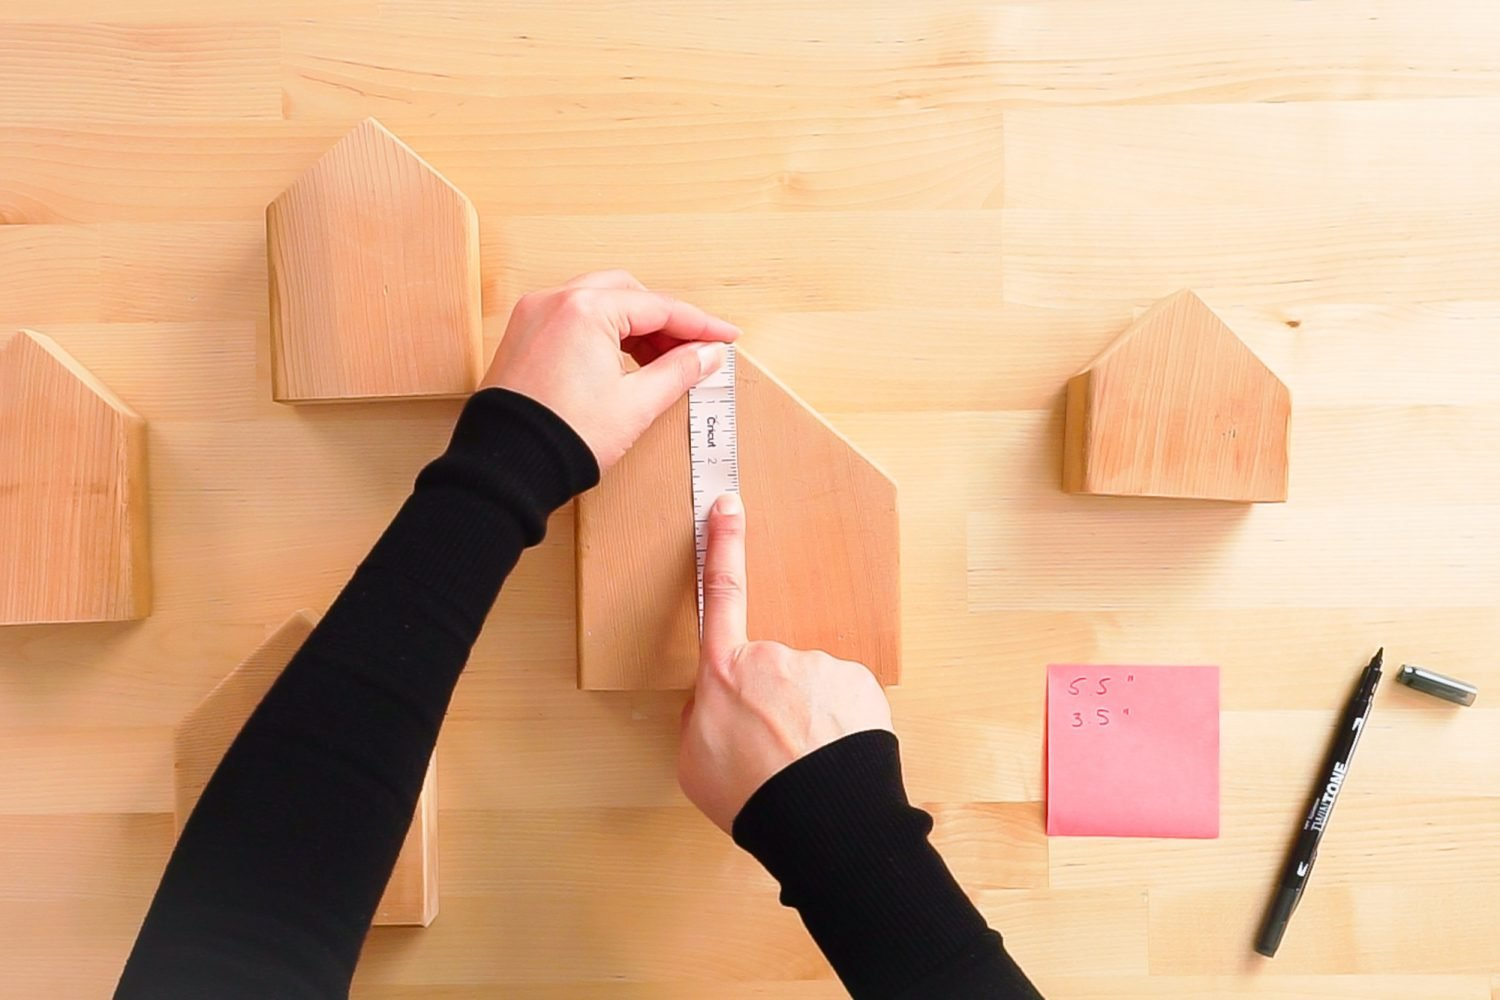 Hands measuring houses